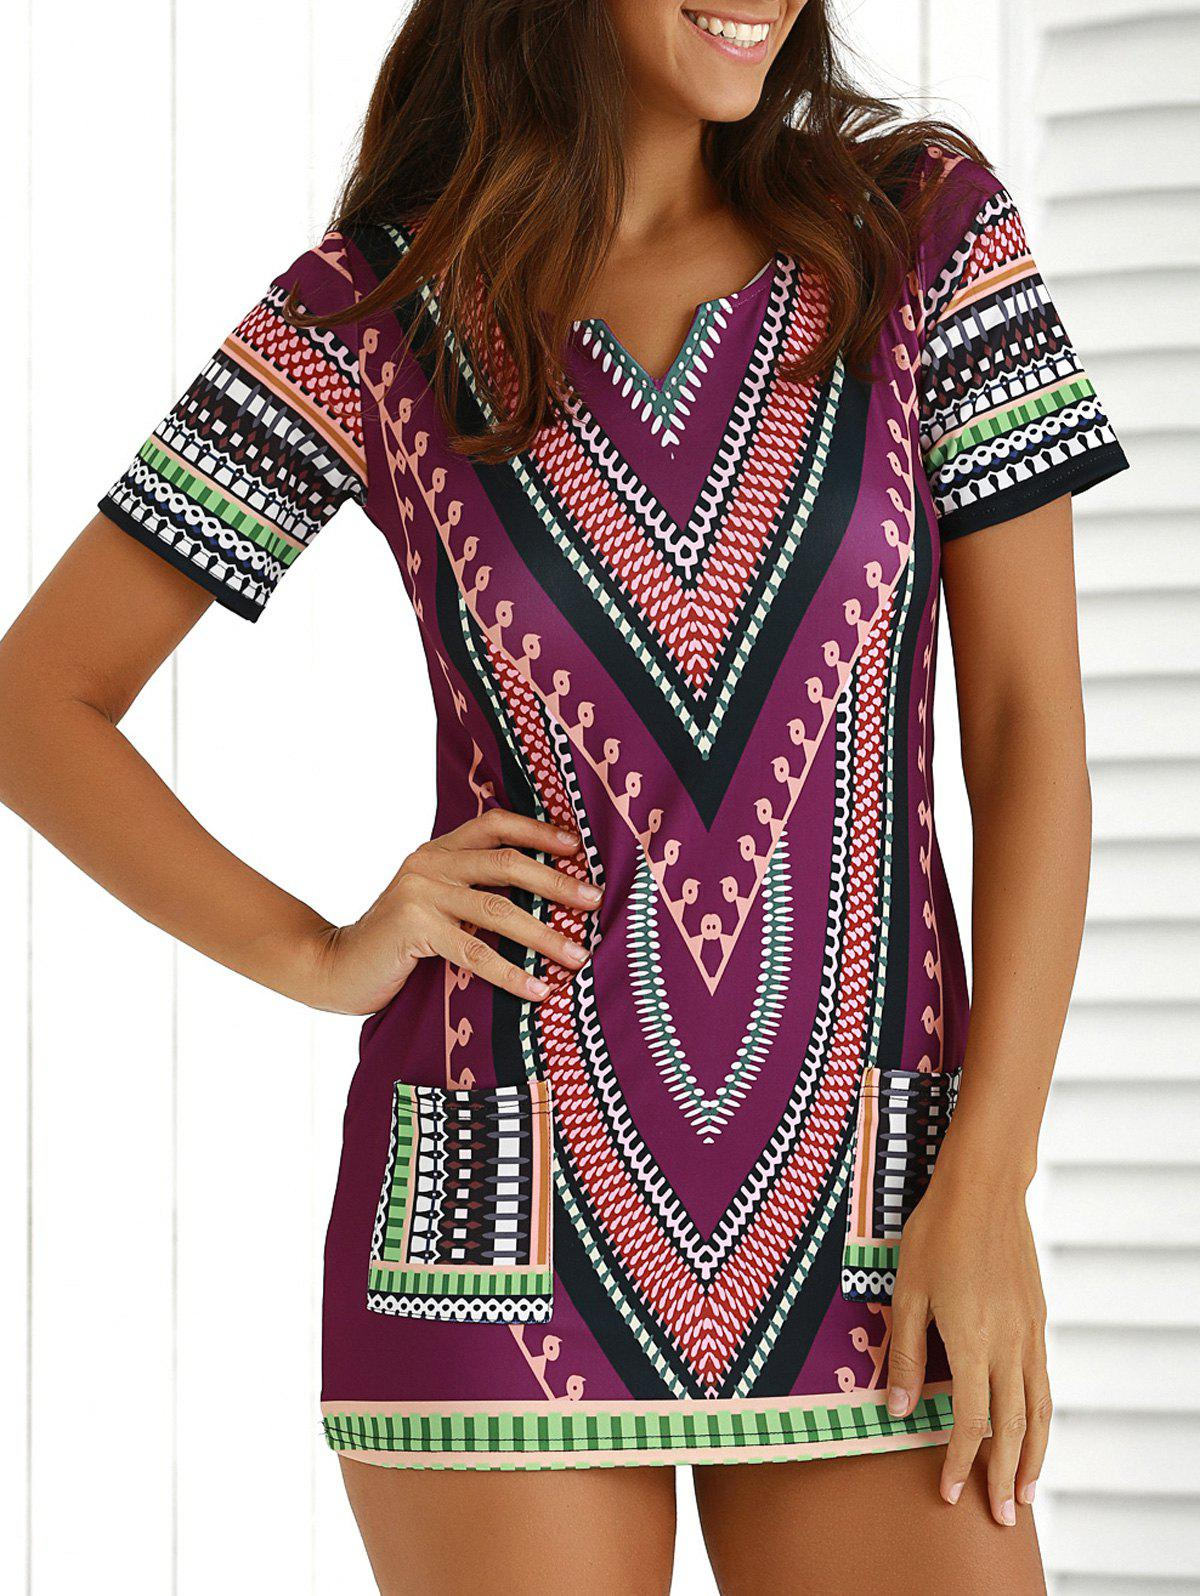 Chic Short Sleeve Patch Pocket Totem Printed Dress For Women - COLORMIX XL